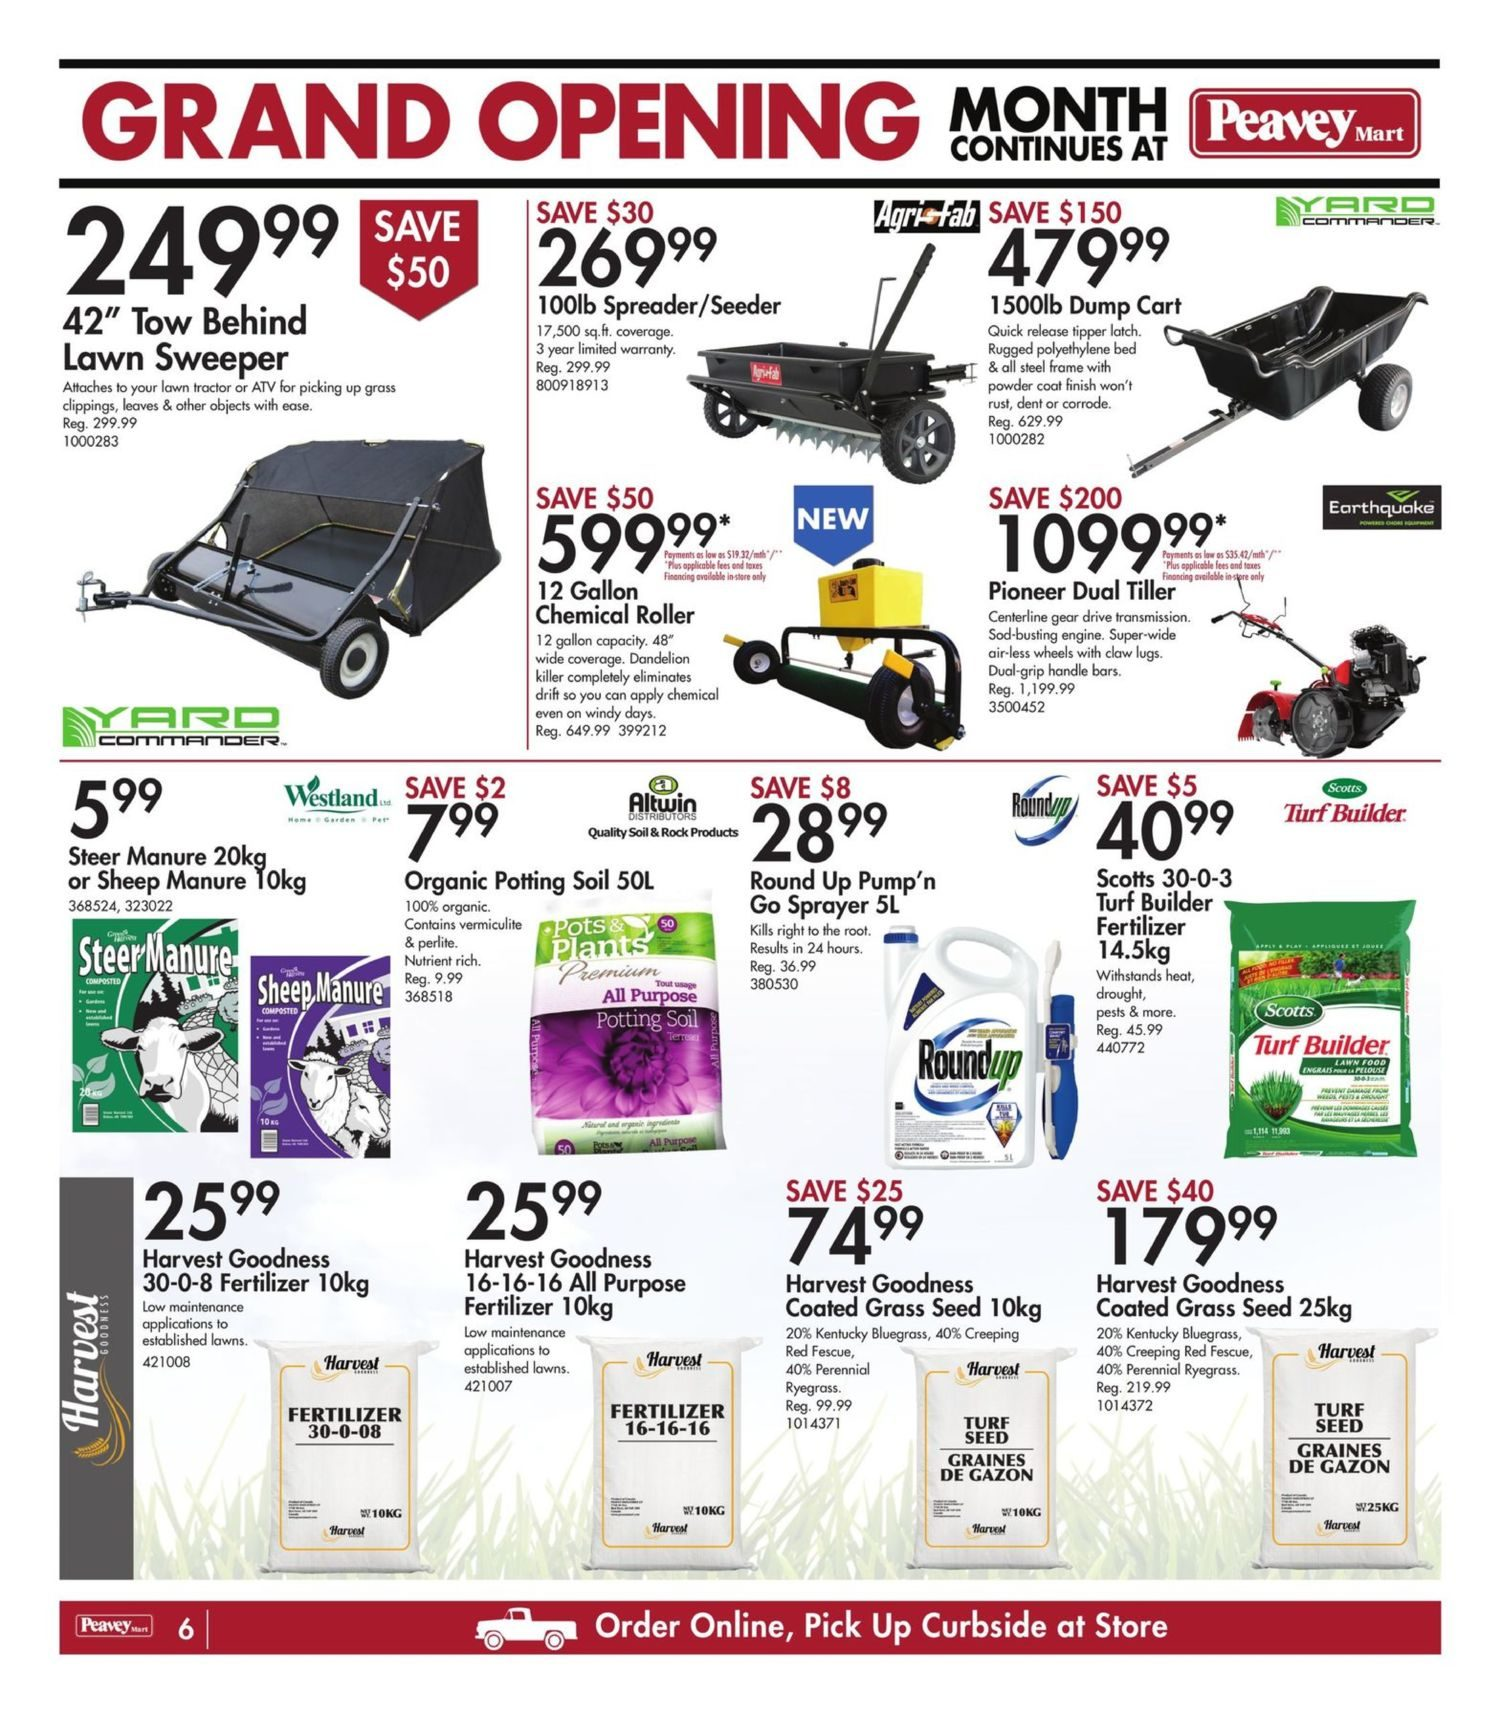 Peavey Mart - Weekly Flyer Specials - National Grand Opening Celebration - Page 9